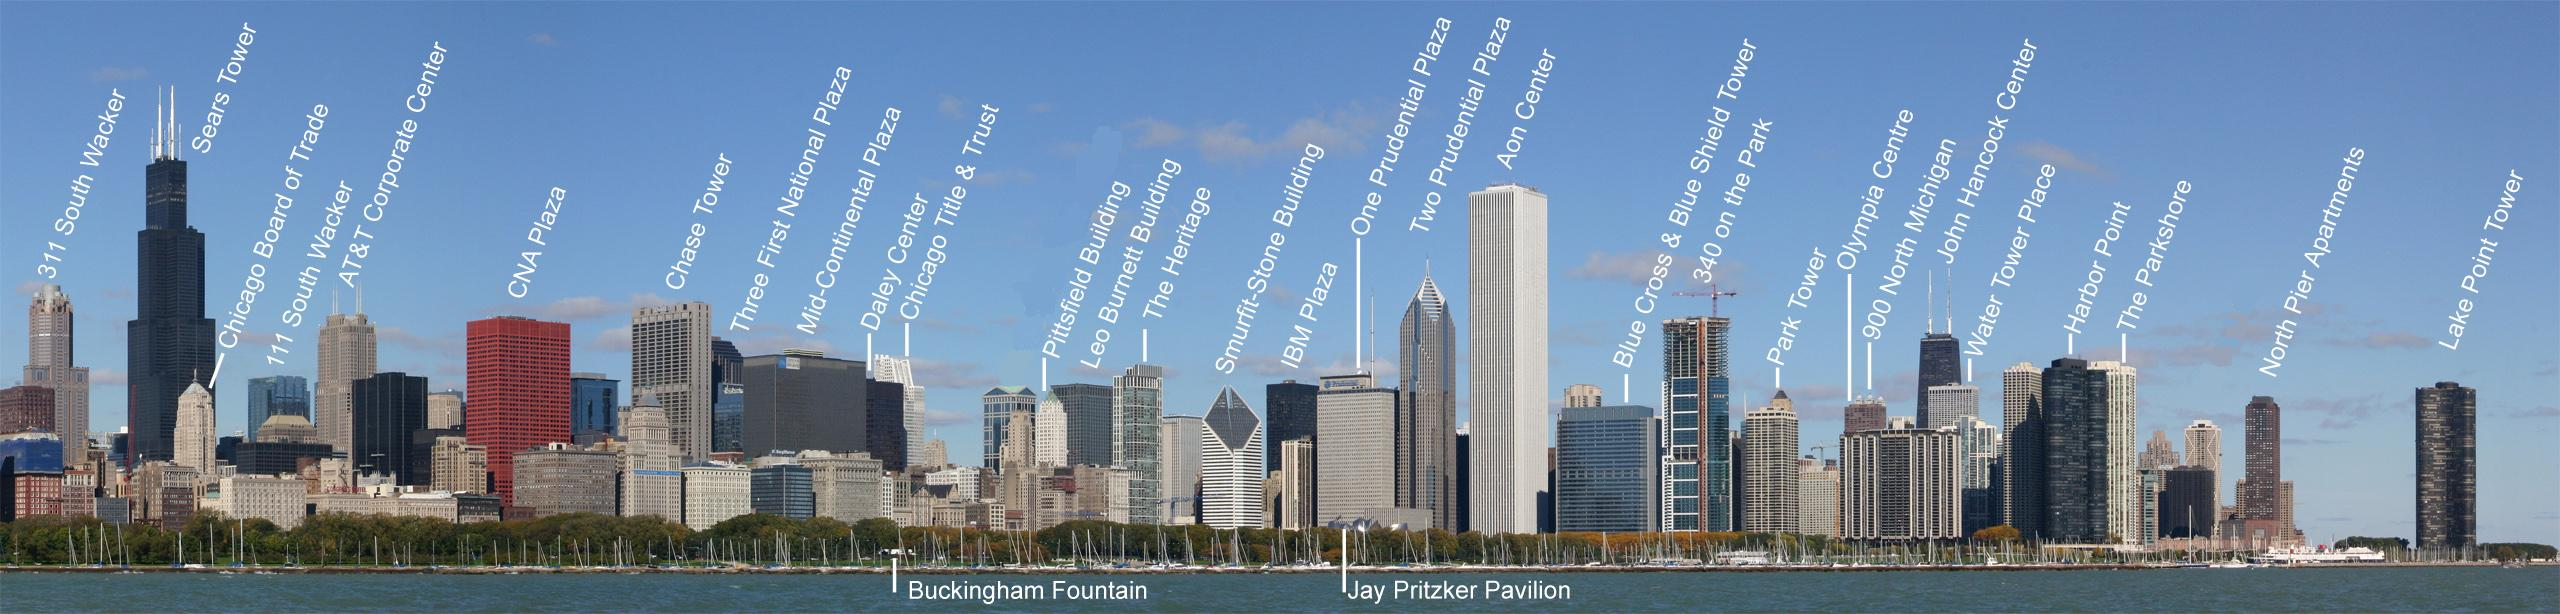 Chicago_Skyline_Crop_Labeled_2560_ver2.j